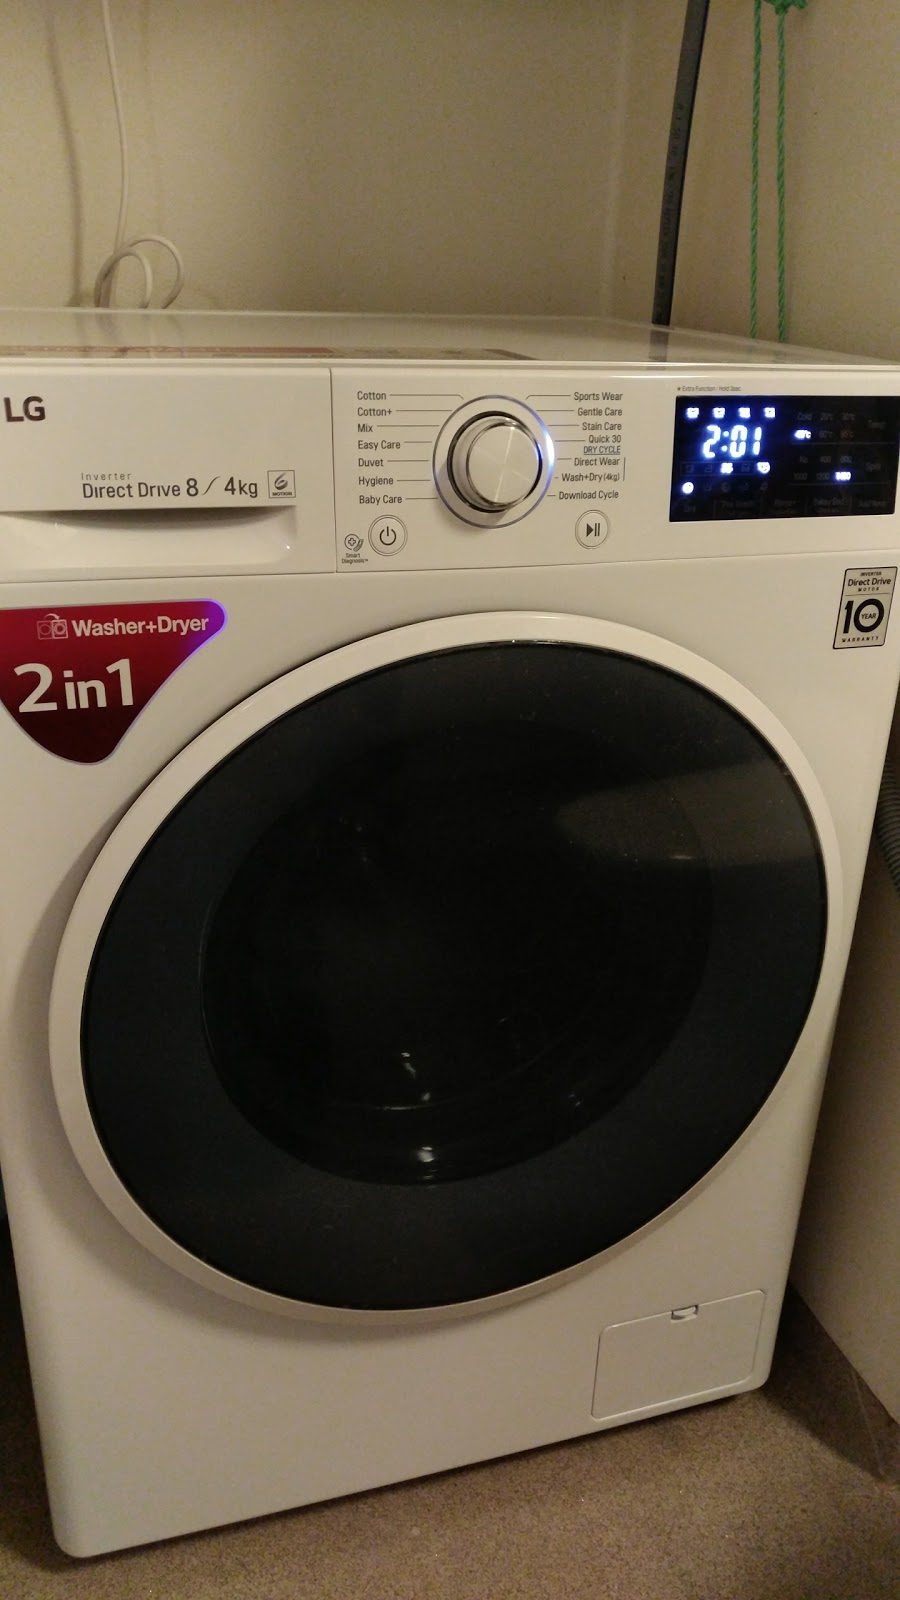 Download How Do I Download A Cycle To My Lg Washing Machine  Wallpapers